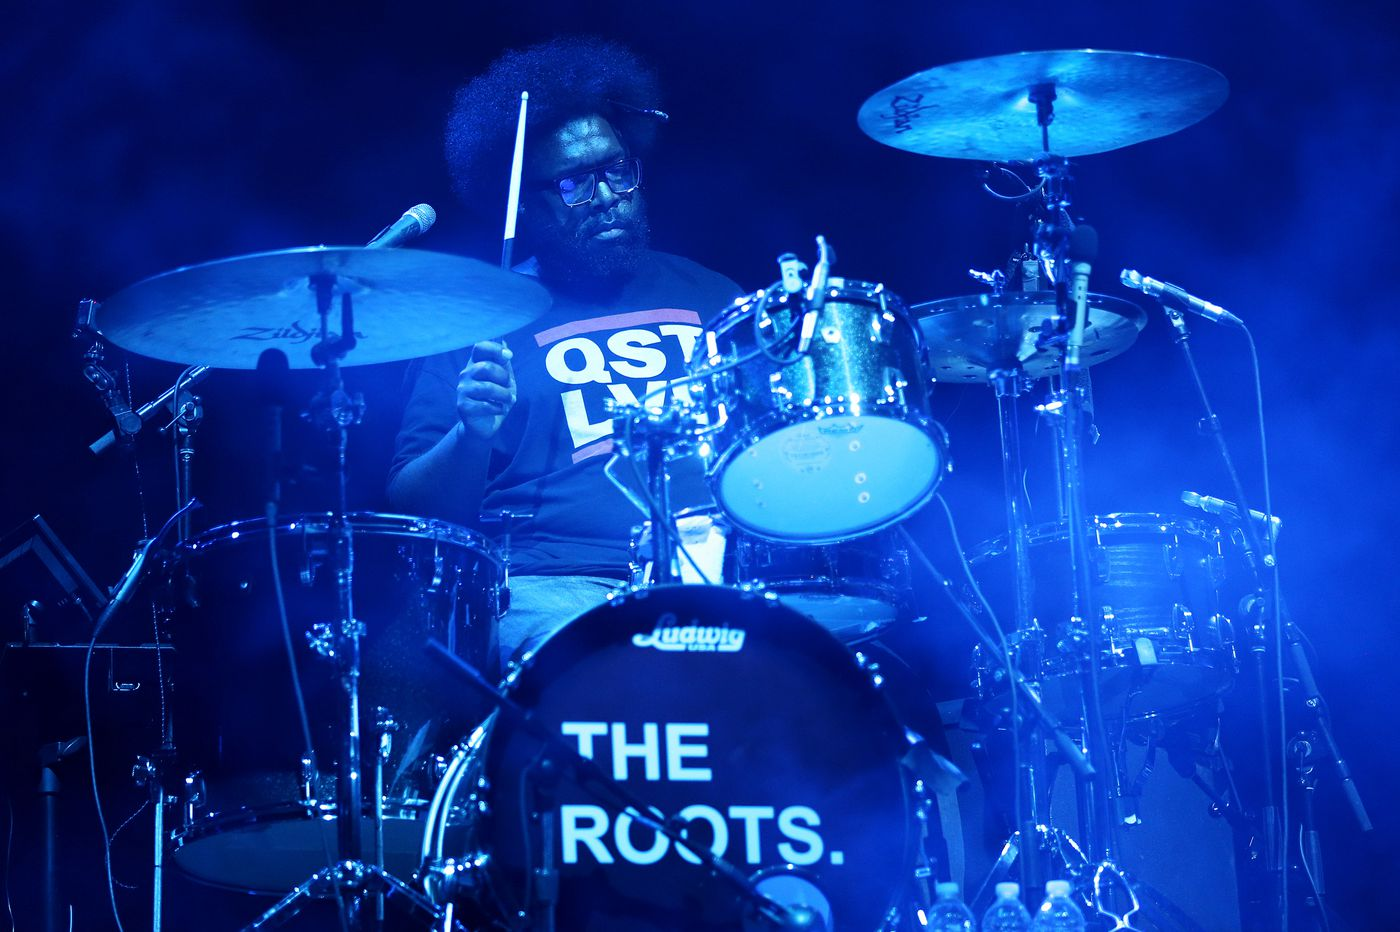 The Roots are among hundreds of artists whose master tapes were destroyed in 2008 fire